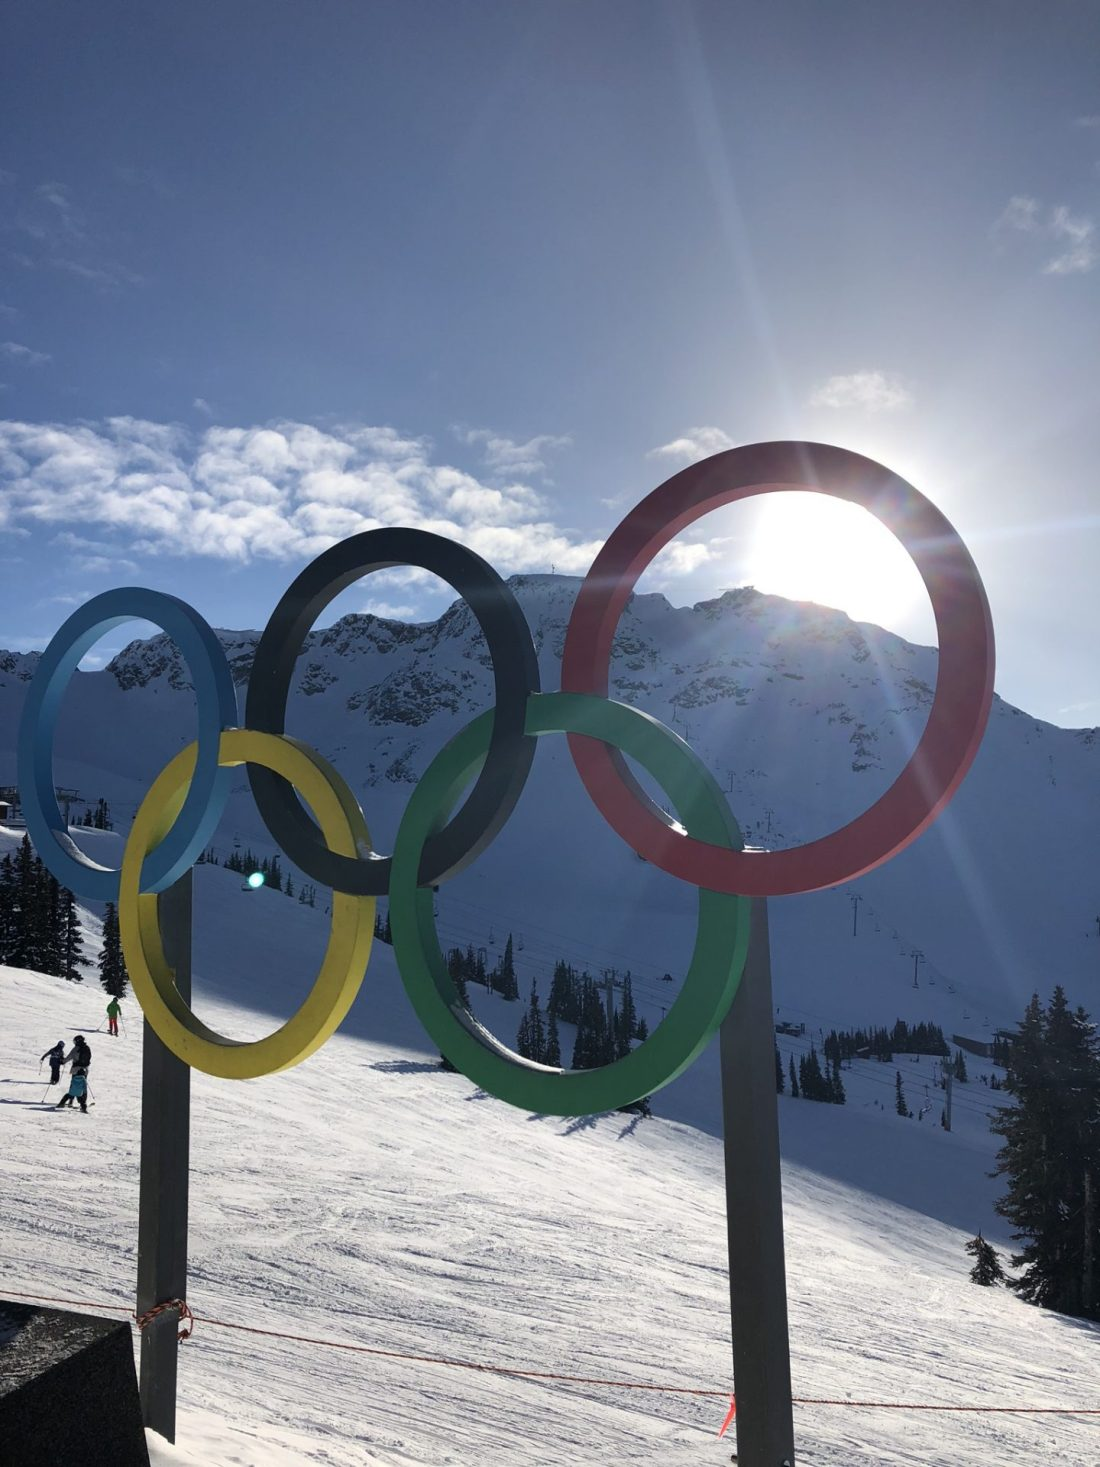 Olympic rings at the top of Whistler mountain, British Columbia